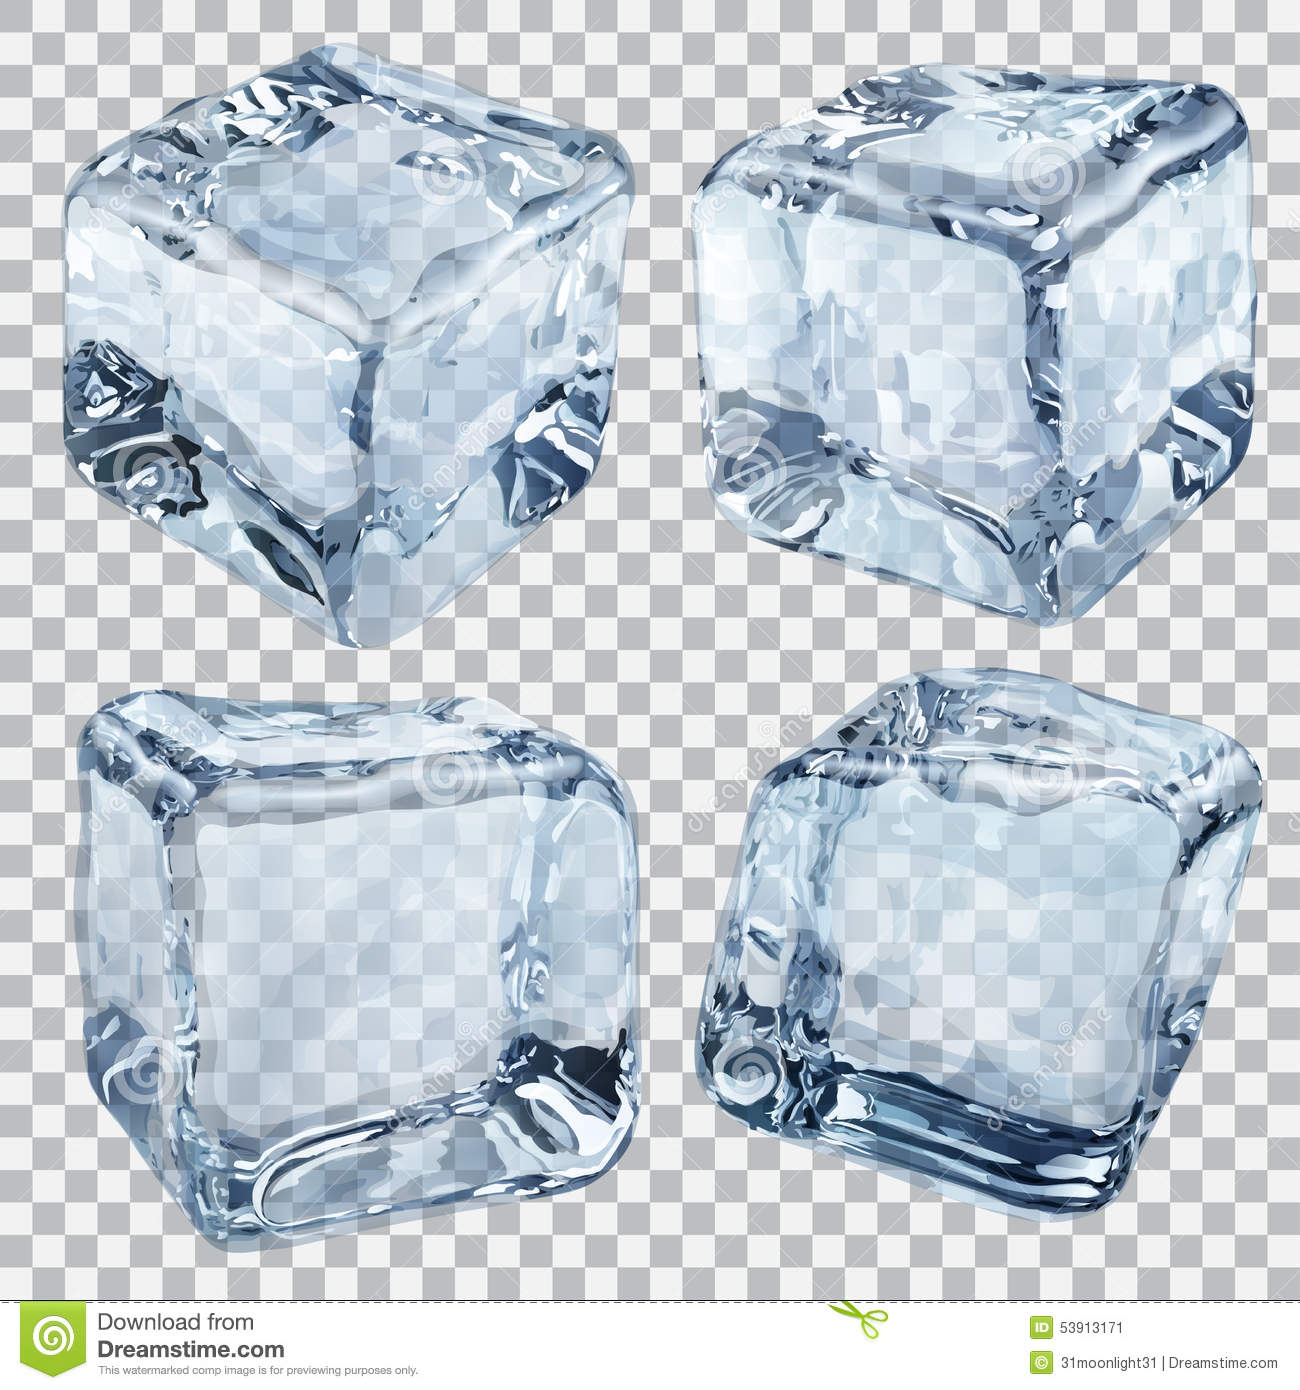 Is It Natural To Drink Less Water In The Winter